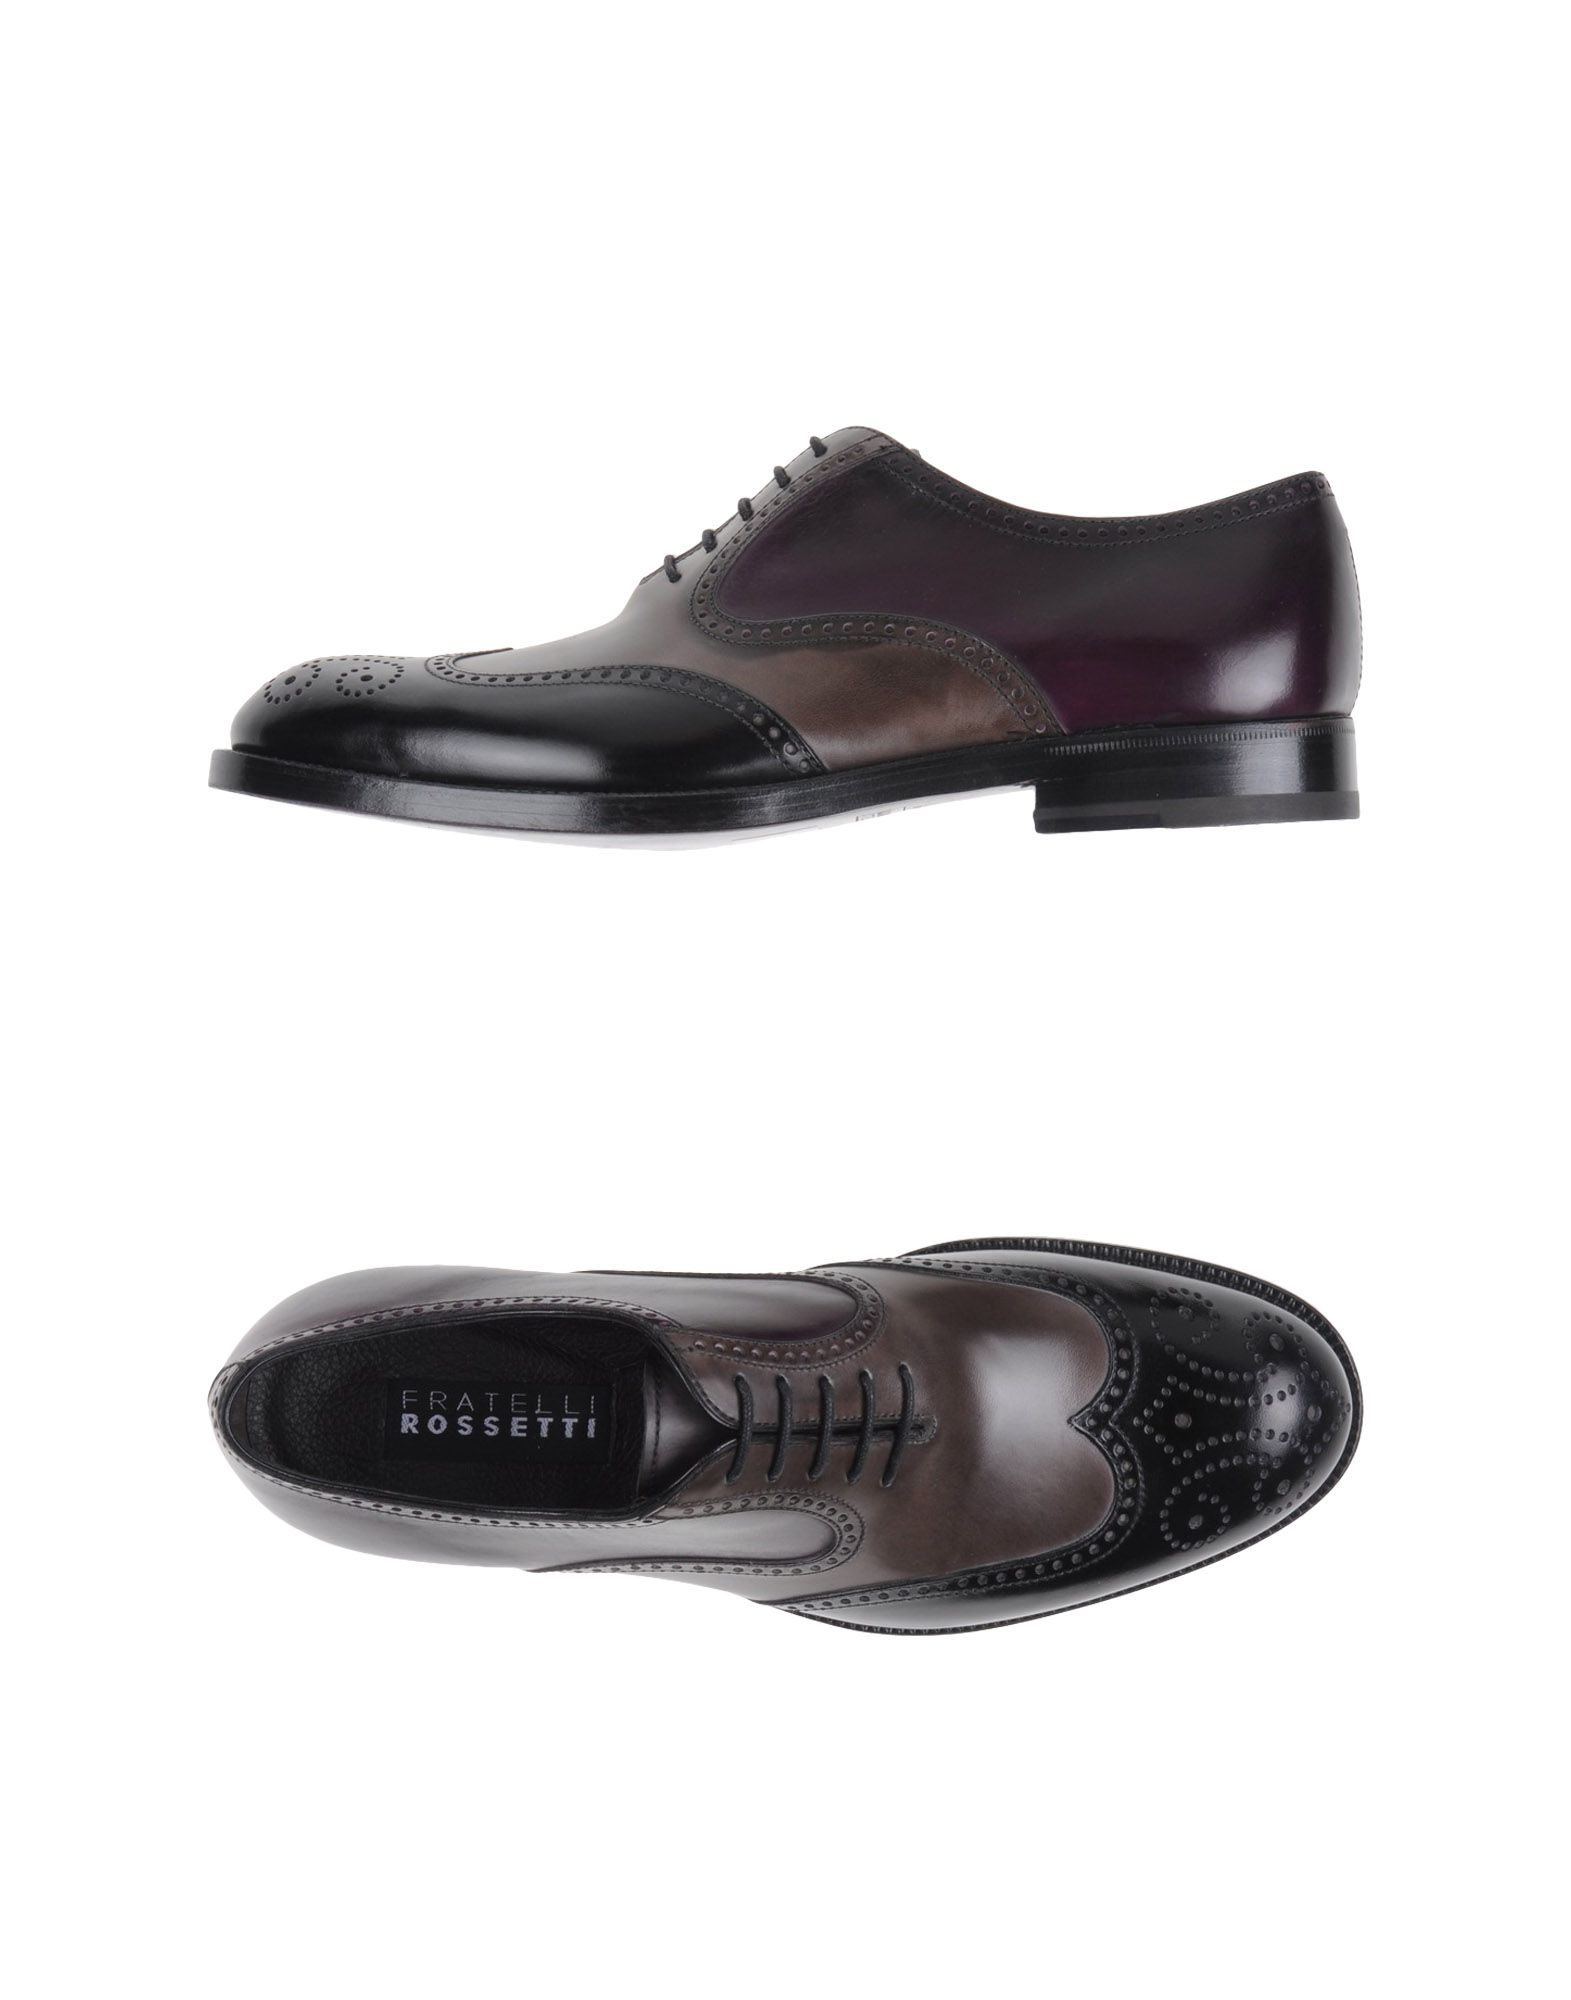 def1071e850 Lyst - Fratelli Rossetti Lace-up Shoes in Brown for Men